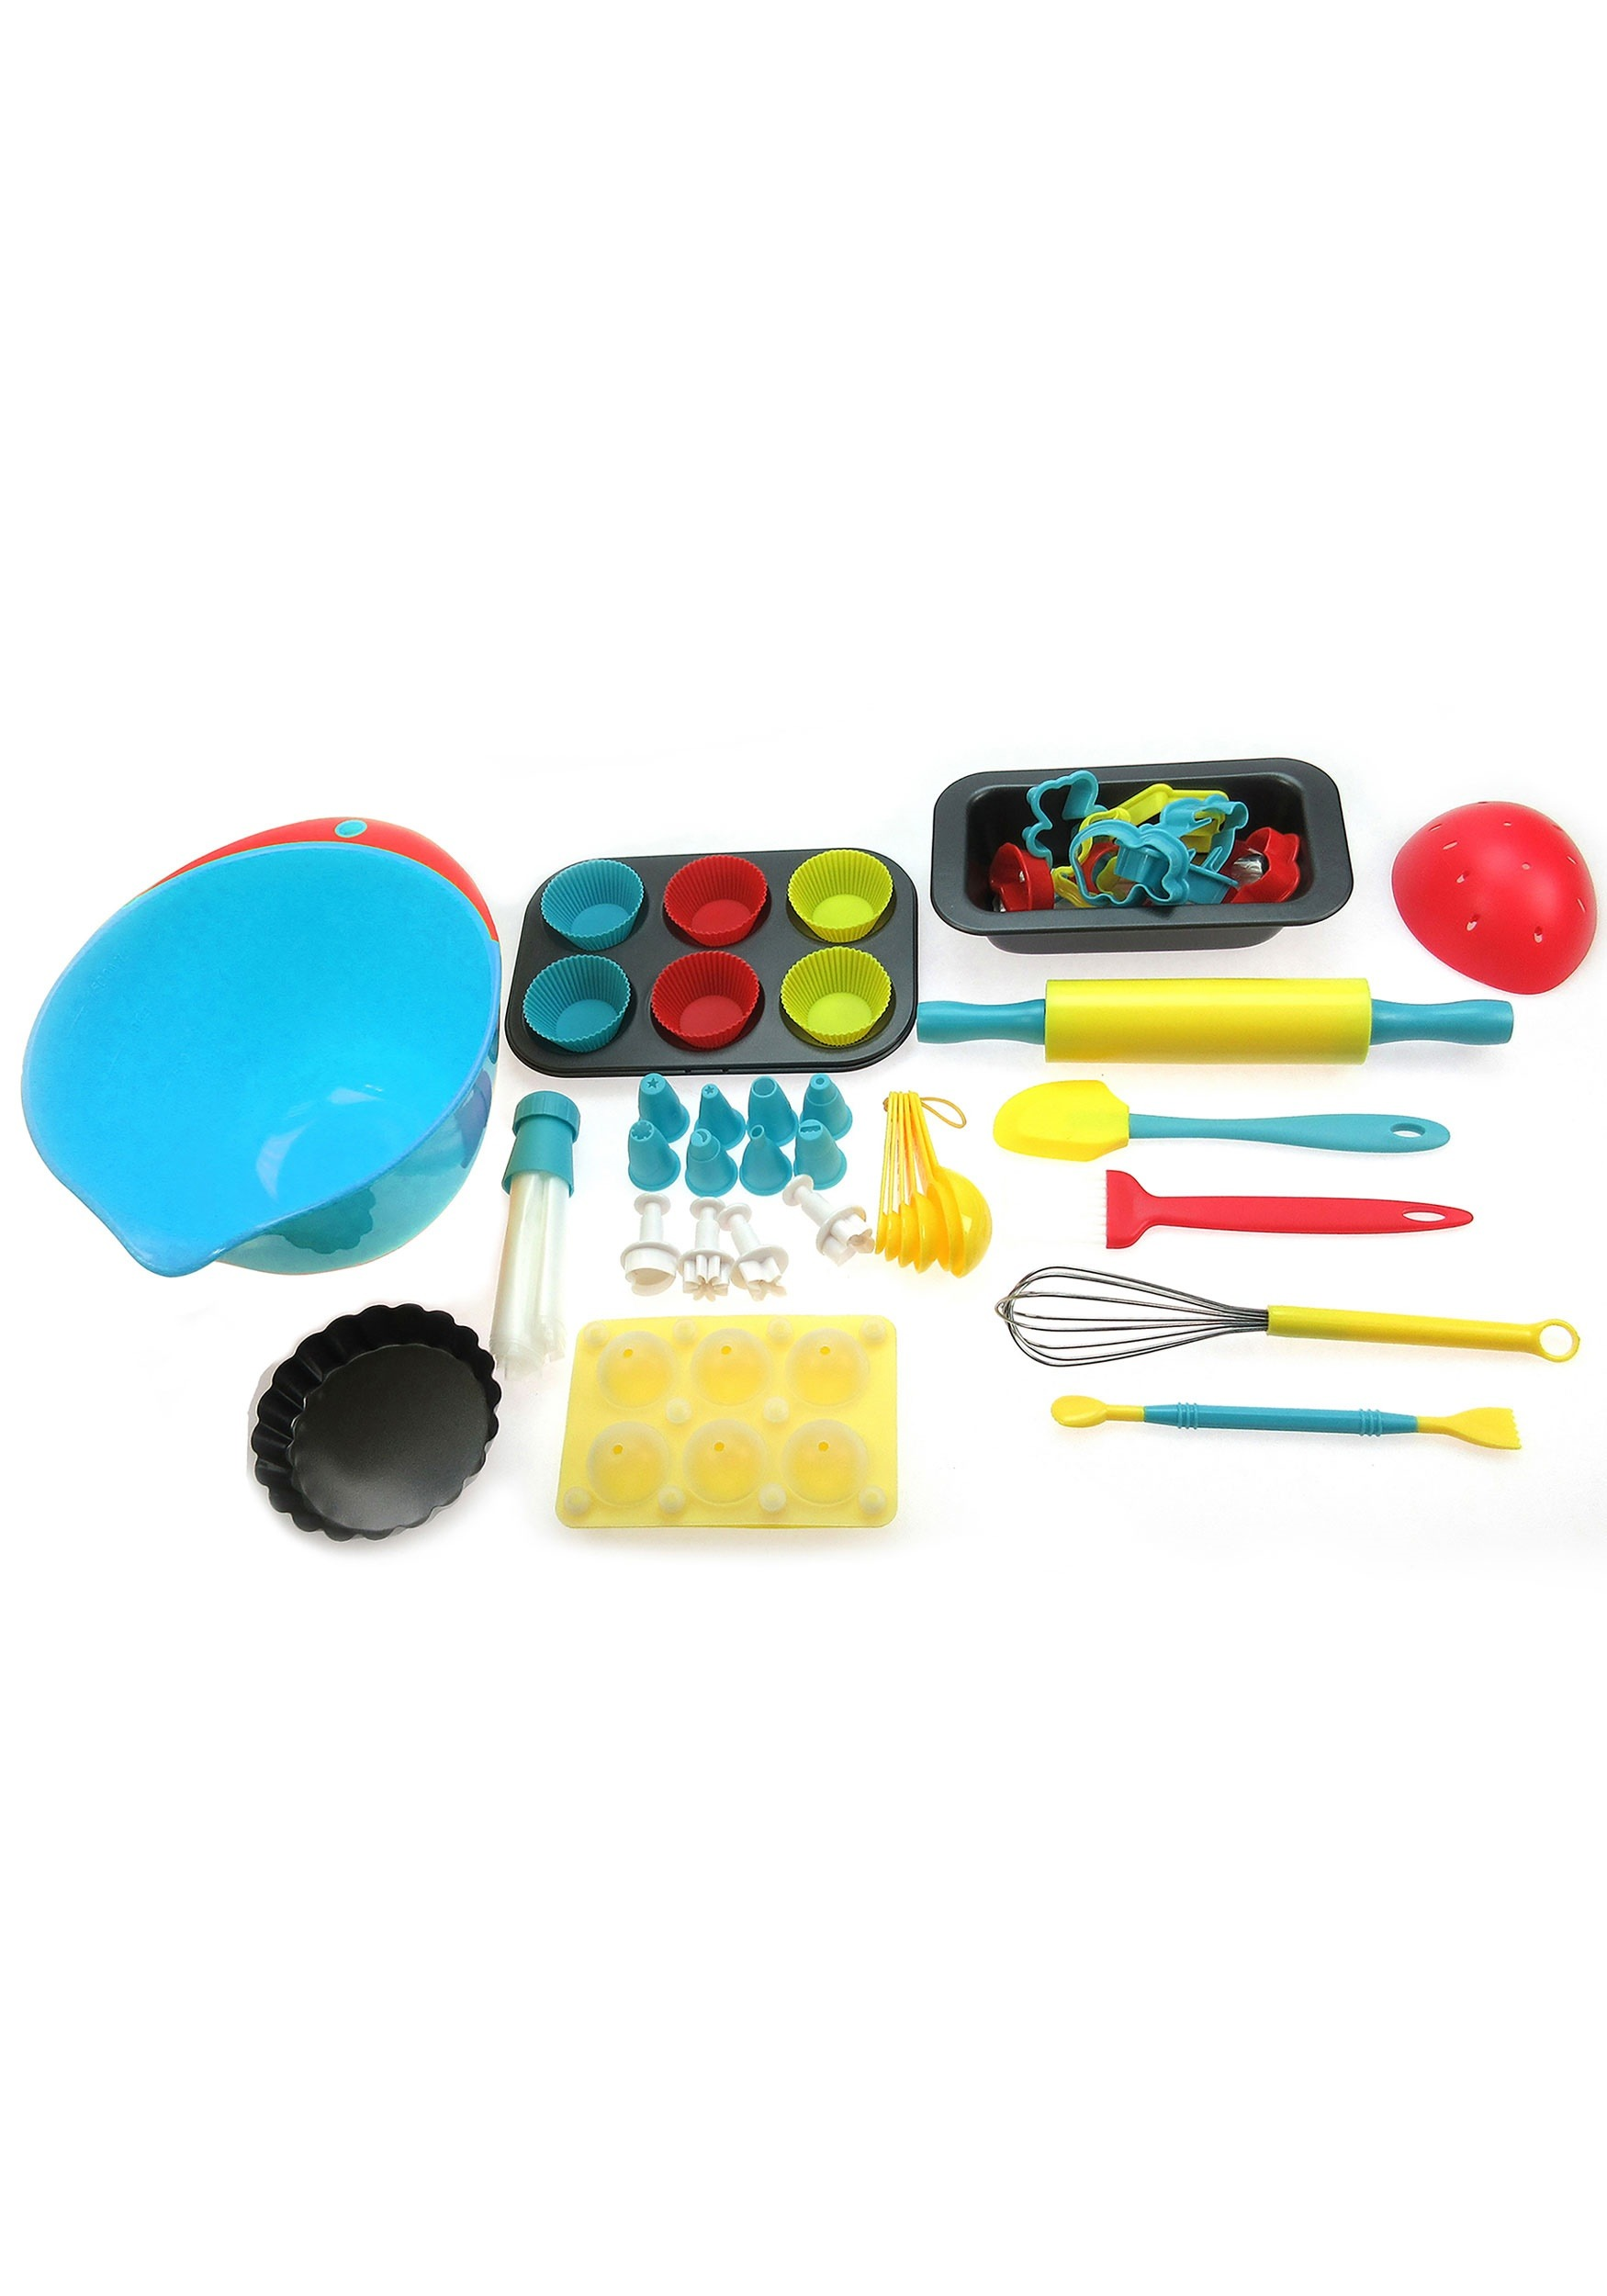 Kids Handstand Kitchen 75 Piece Ultimate Bakers Set